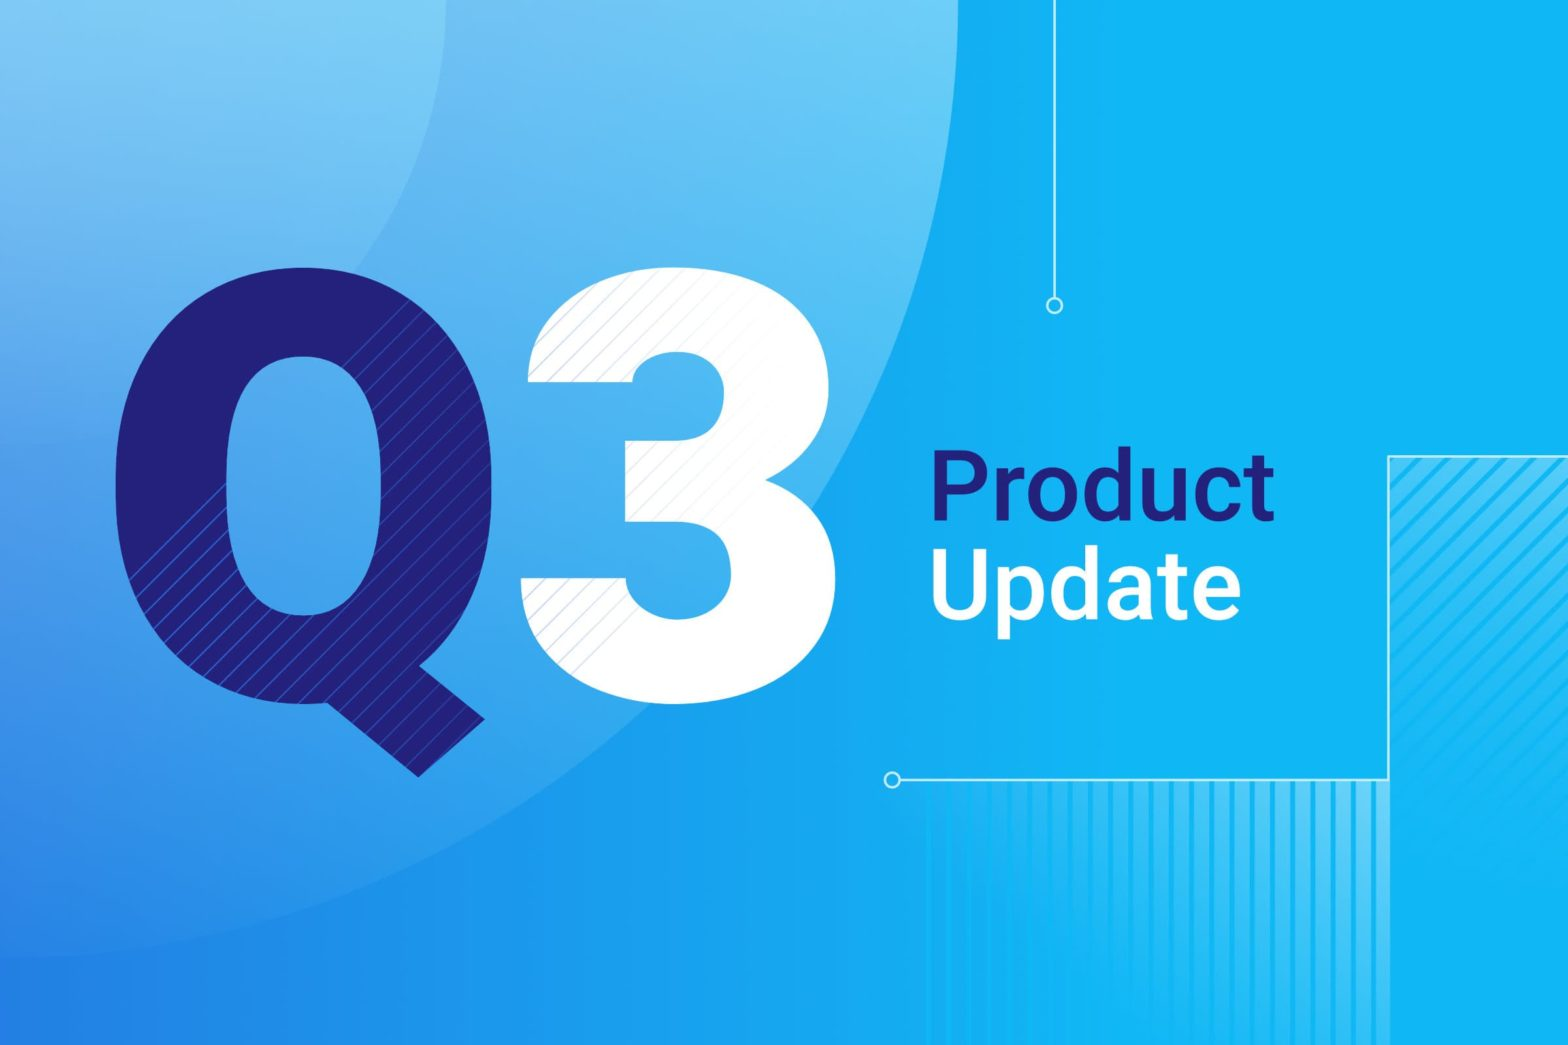 contacts+ Q3 product updates blog header image